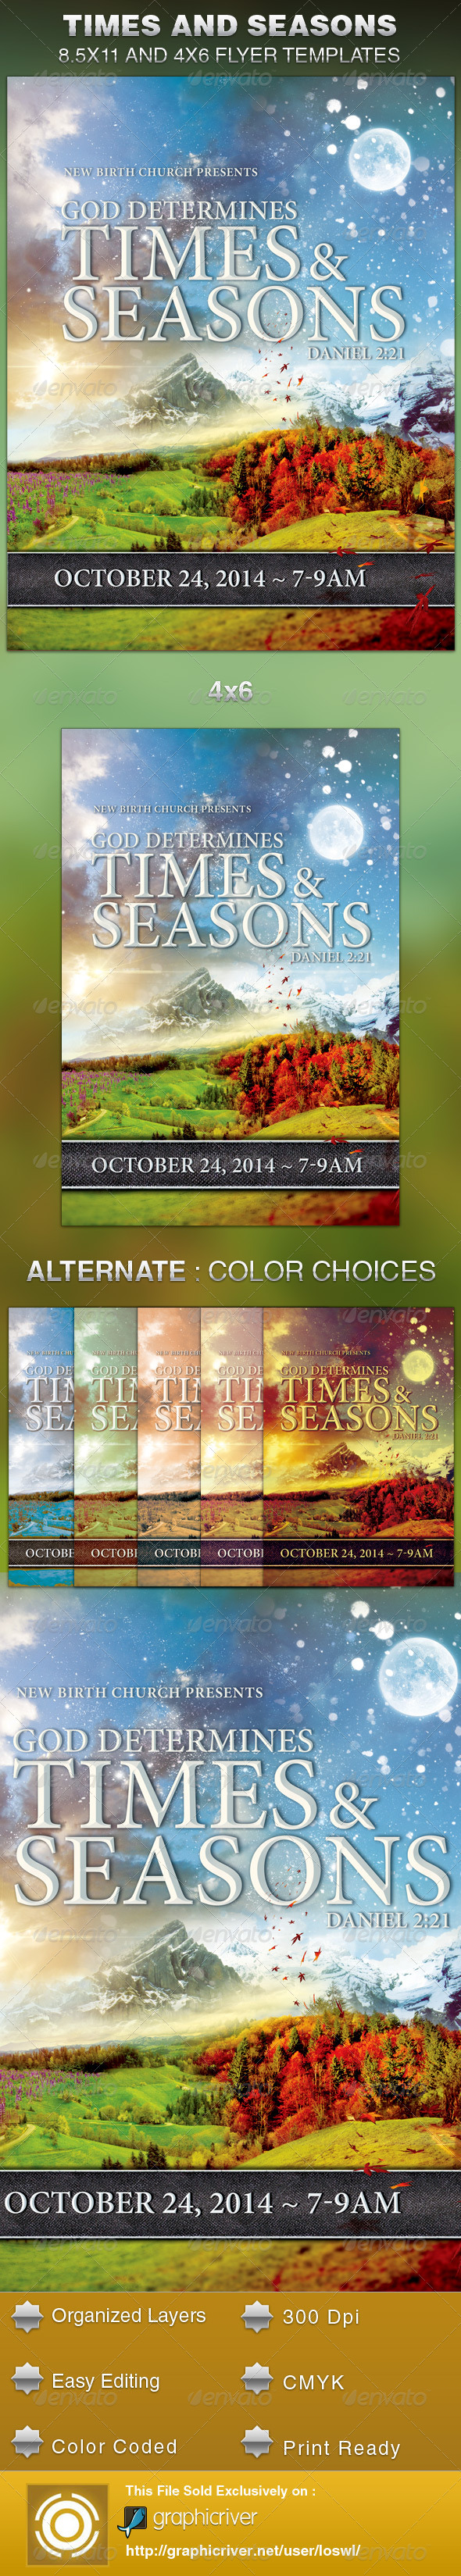 God Determines Times And Seasons Church Flyer - Church Flyers